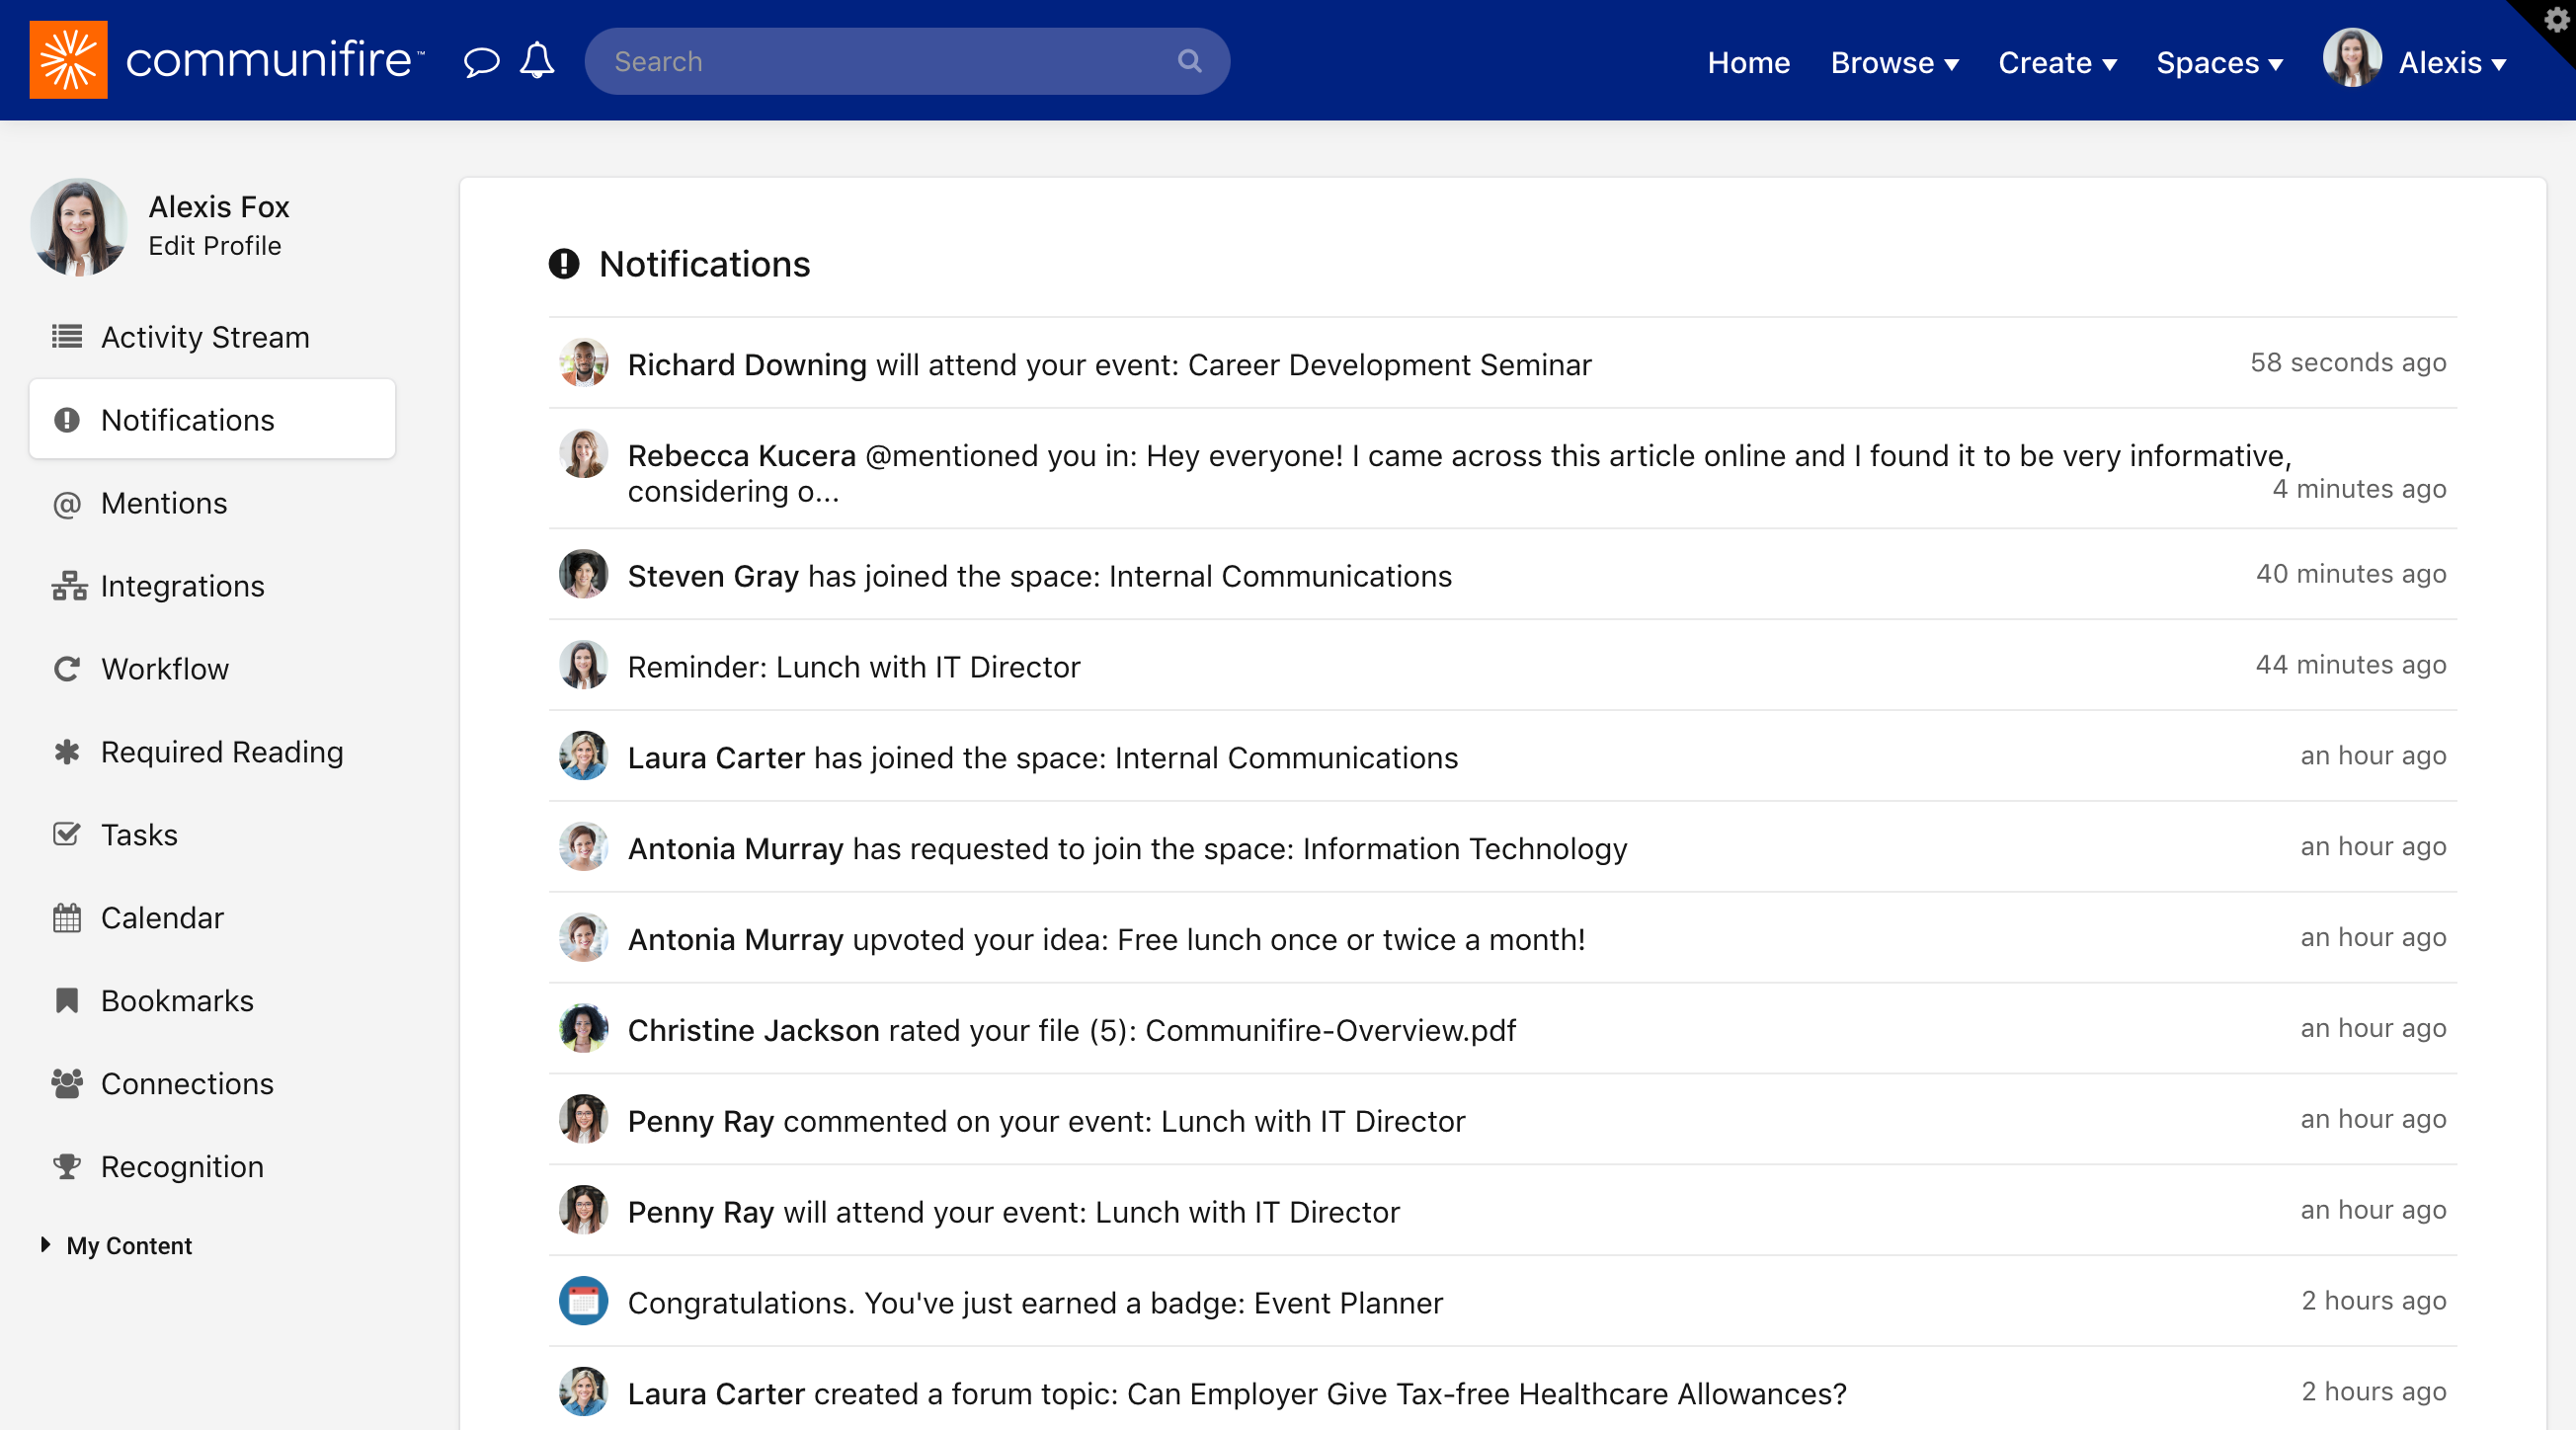 The Notifications page